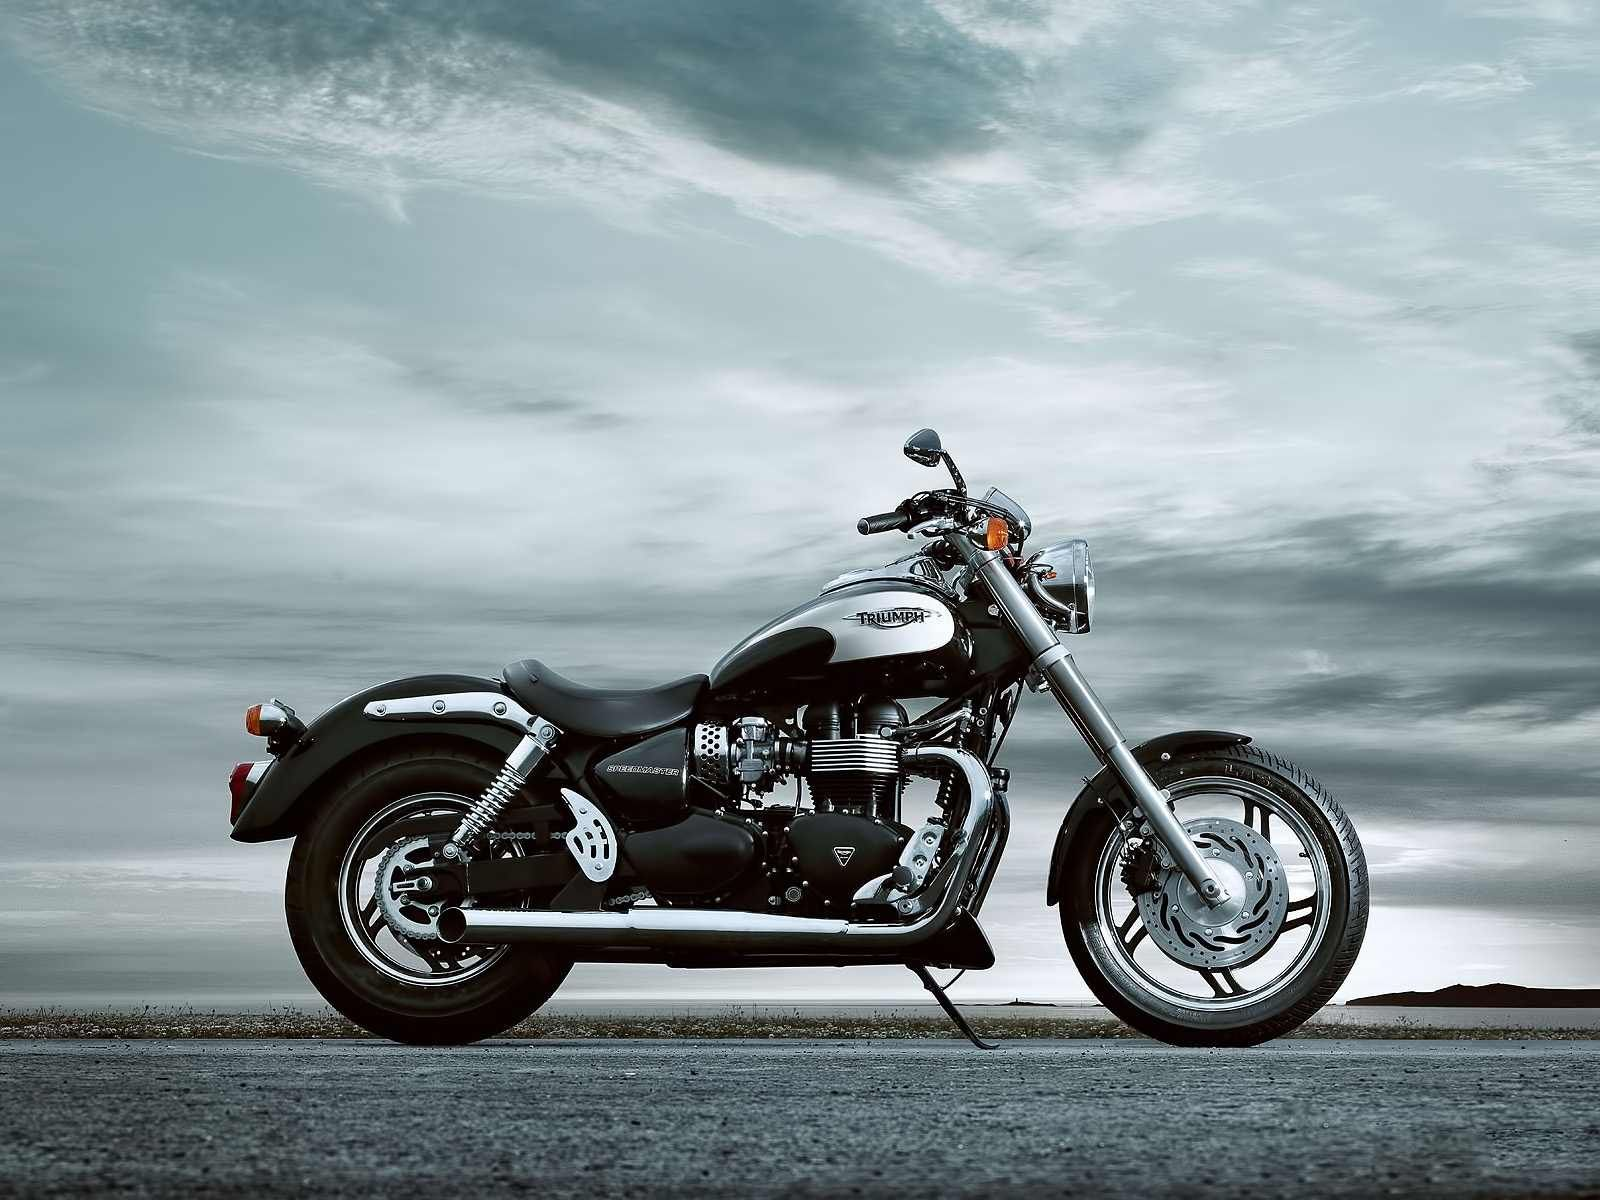 Bullet Bike Wallpaper Hd Collection Of Royal Enfiled Bullet Epic